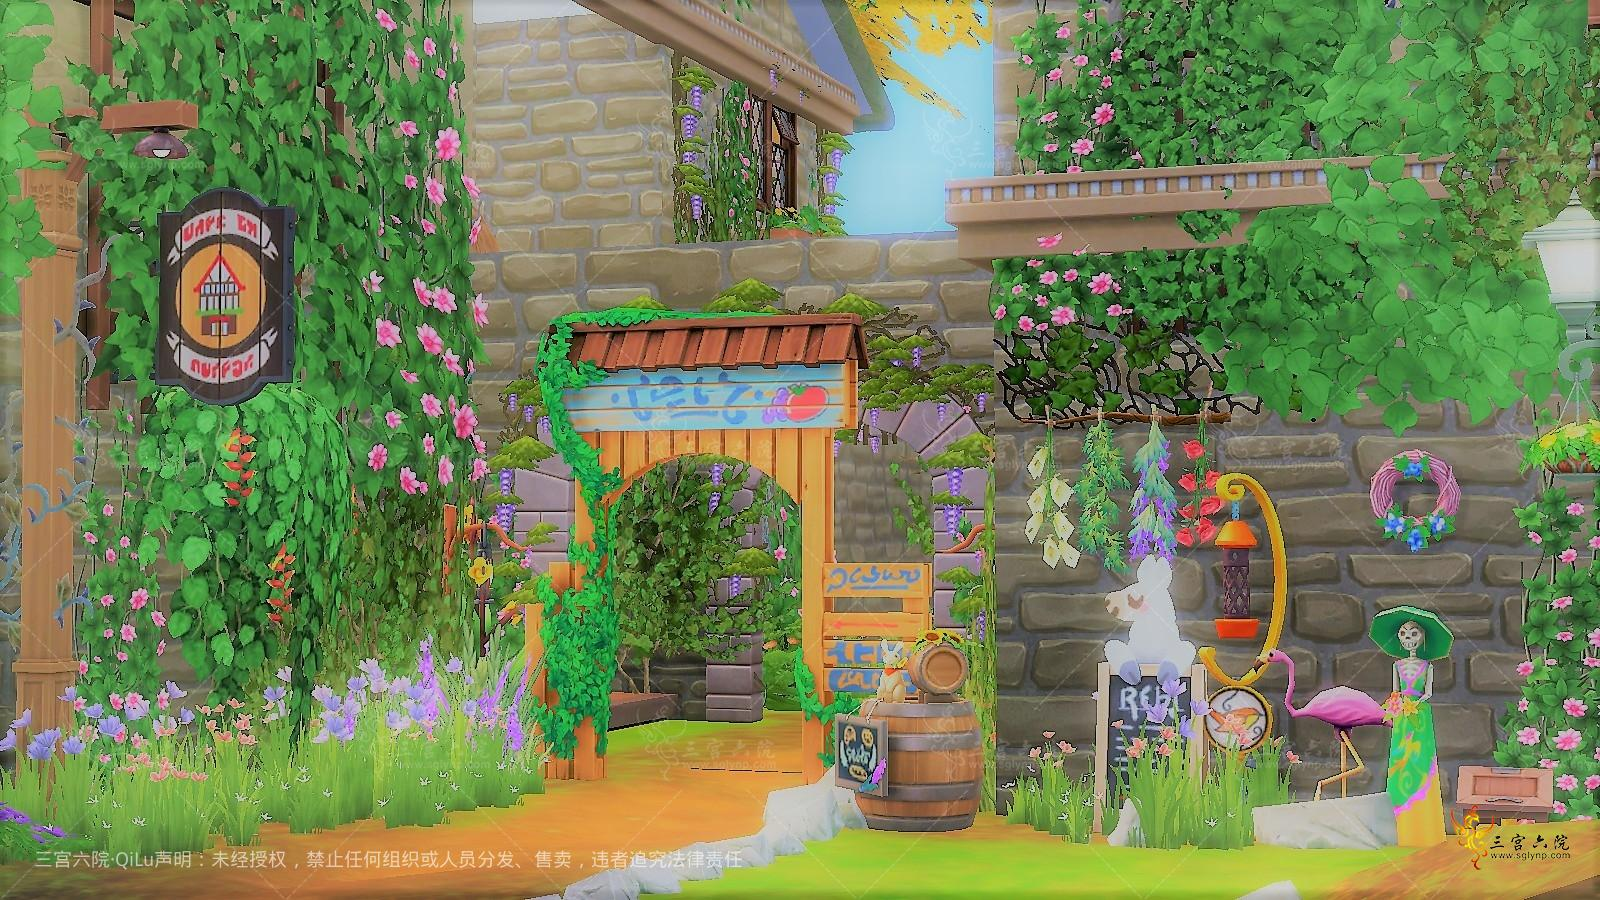 The Sims 4 2021_8_22 8_36_13.png